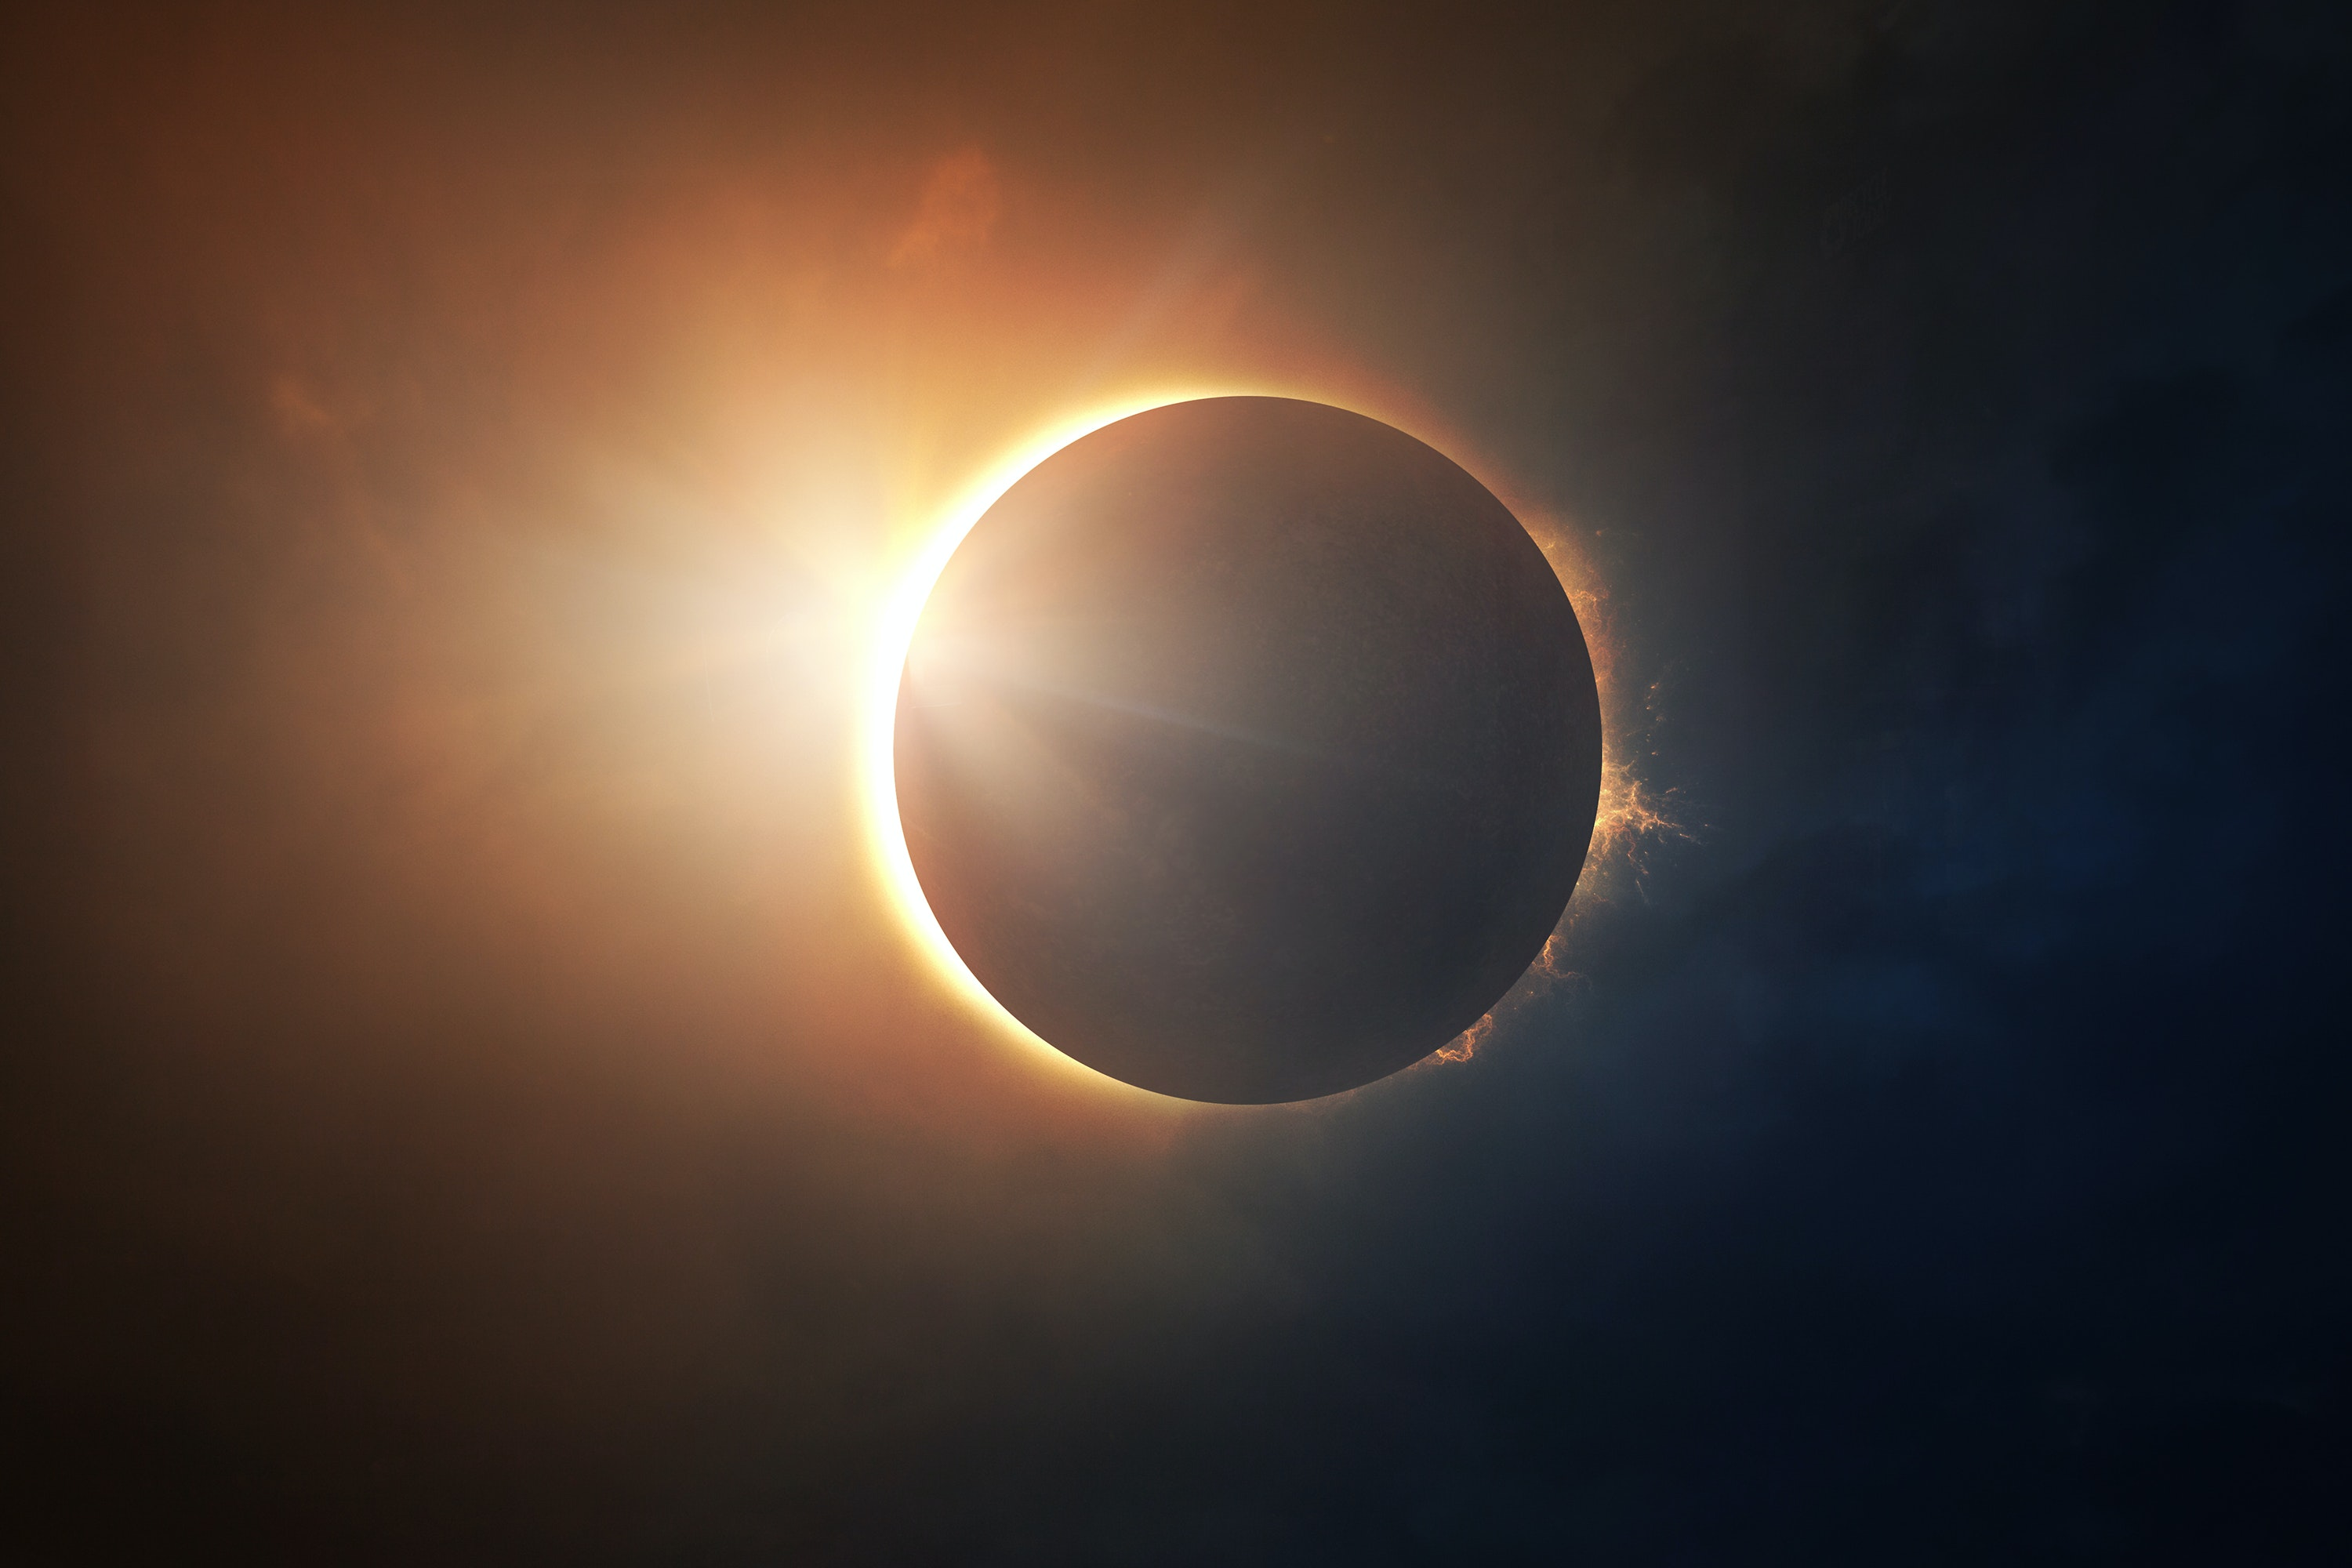 Wild Frontiers will put you in the path of totality for the 2019 eclipse.